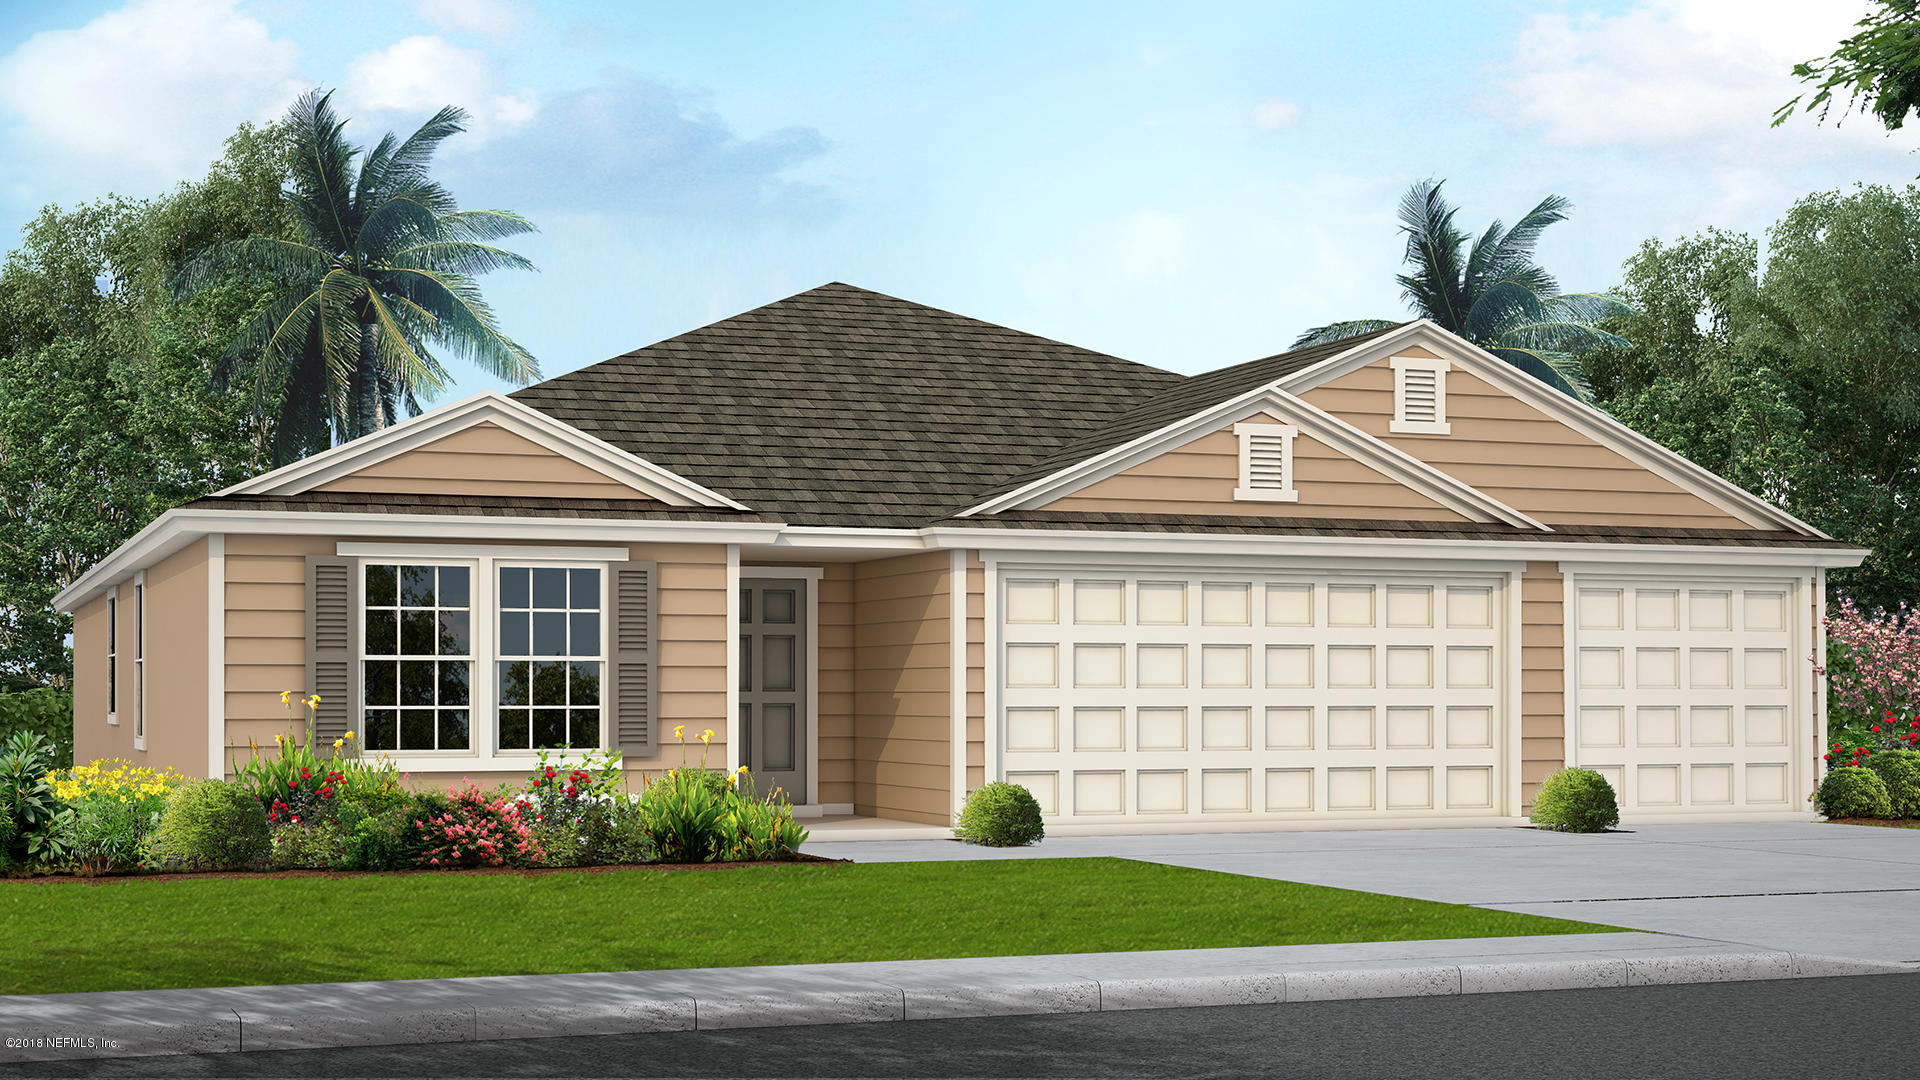 7033 SANDLE, JACKSONVILLE, FLORIDA 32219, 3 Bedrooms Bedrooms, ,2 BathroomsBathrooms,Residential - single family,For sale,SANDLE,952607